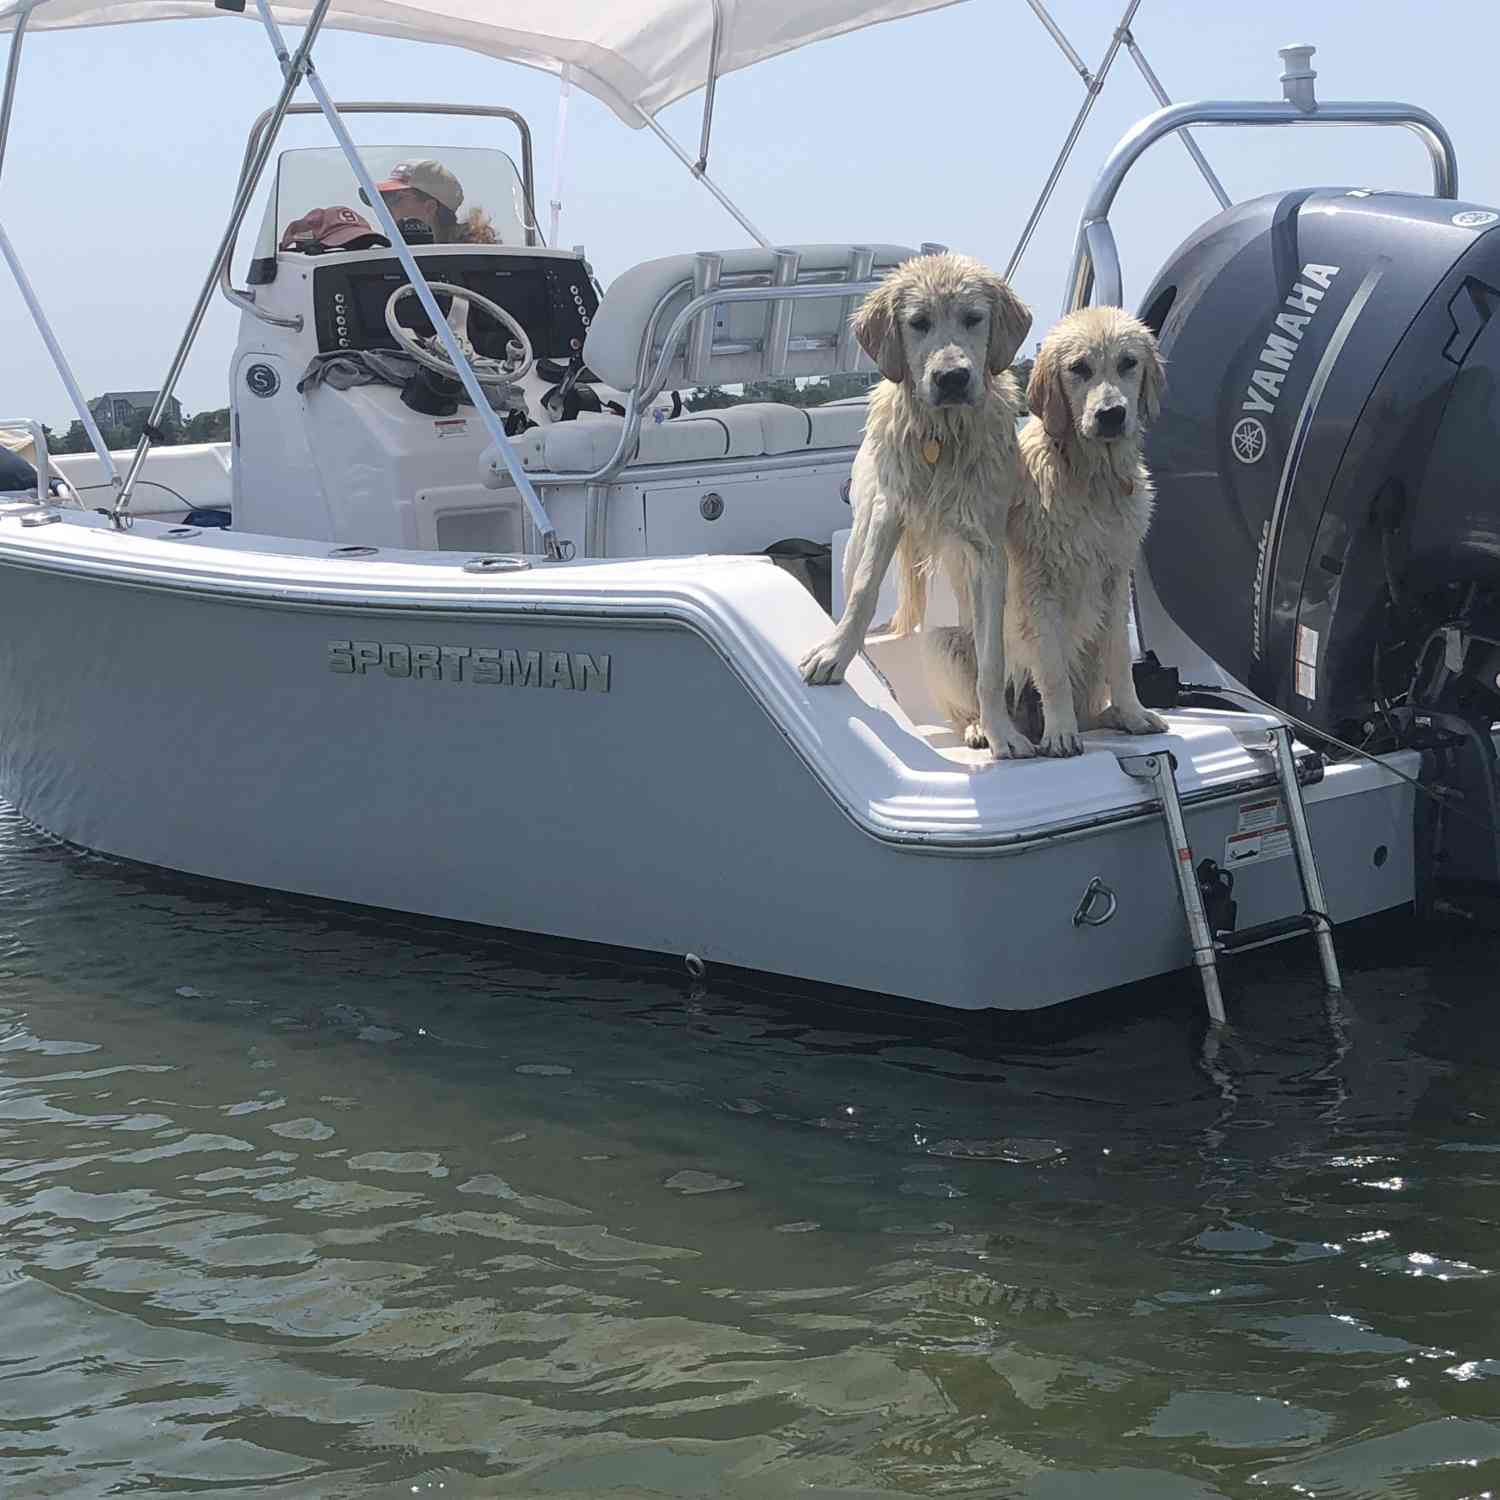 Title: Family and Dog Friendly - On board their Sportsman Open 212 Center Console - Location: Westerly RI. Participating in the Photo Contest #SportsmanSeptember2018